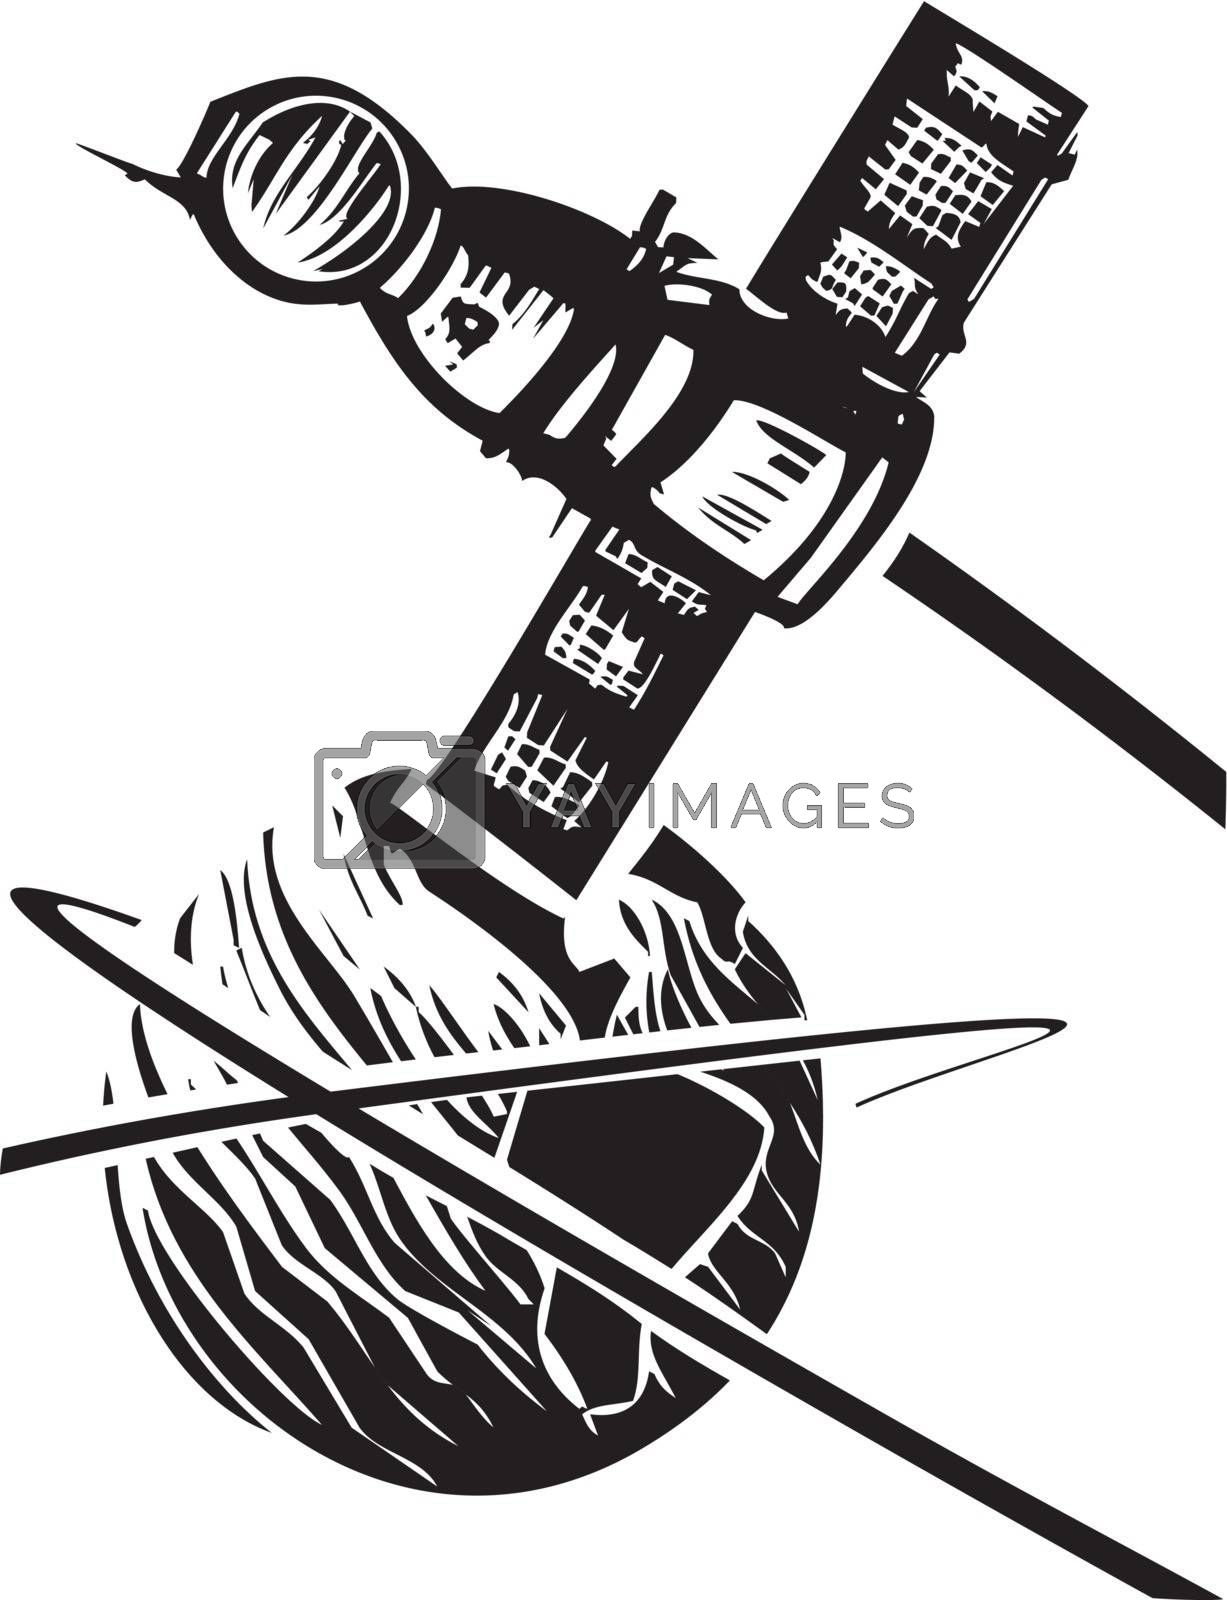 Black and White Soviet Poster style image of a Russian Soyuz capsule orbiting Earth.